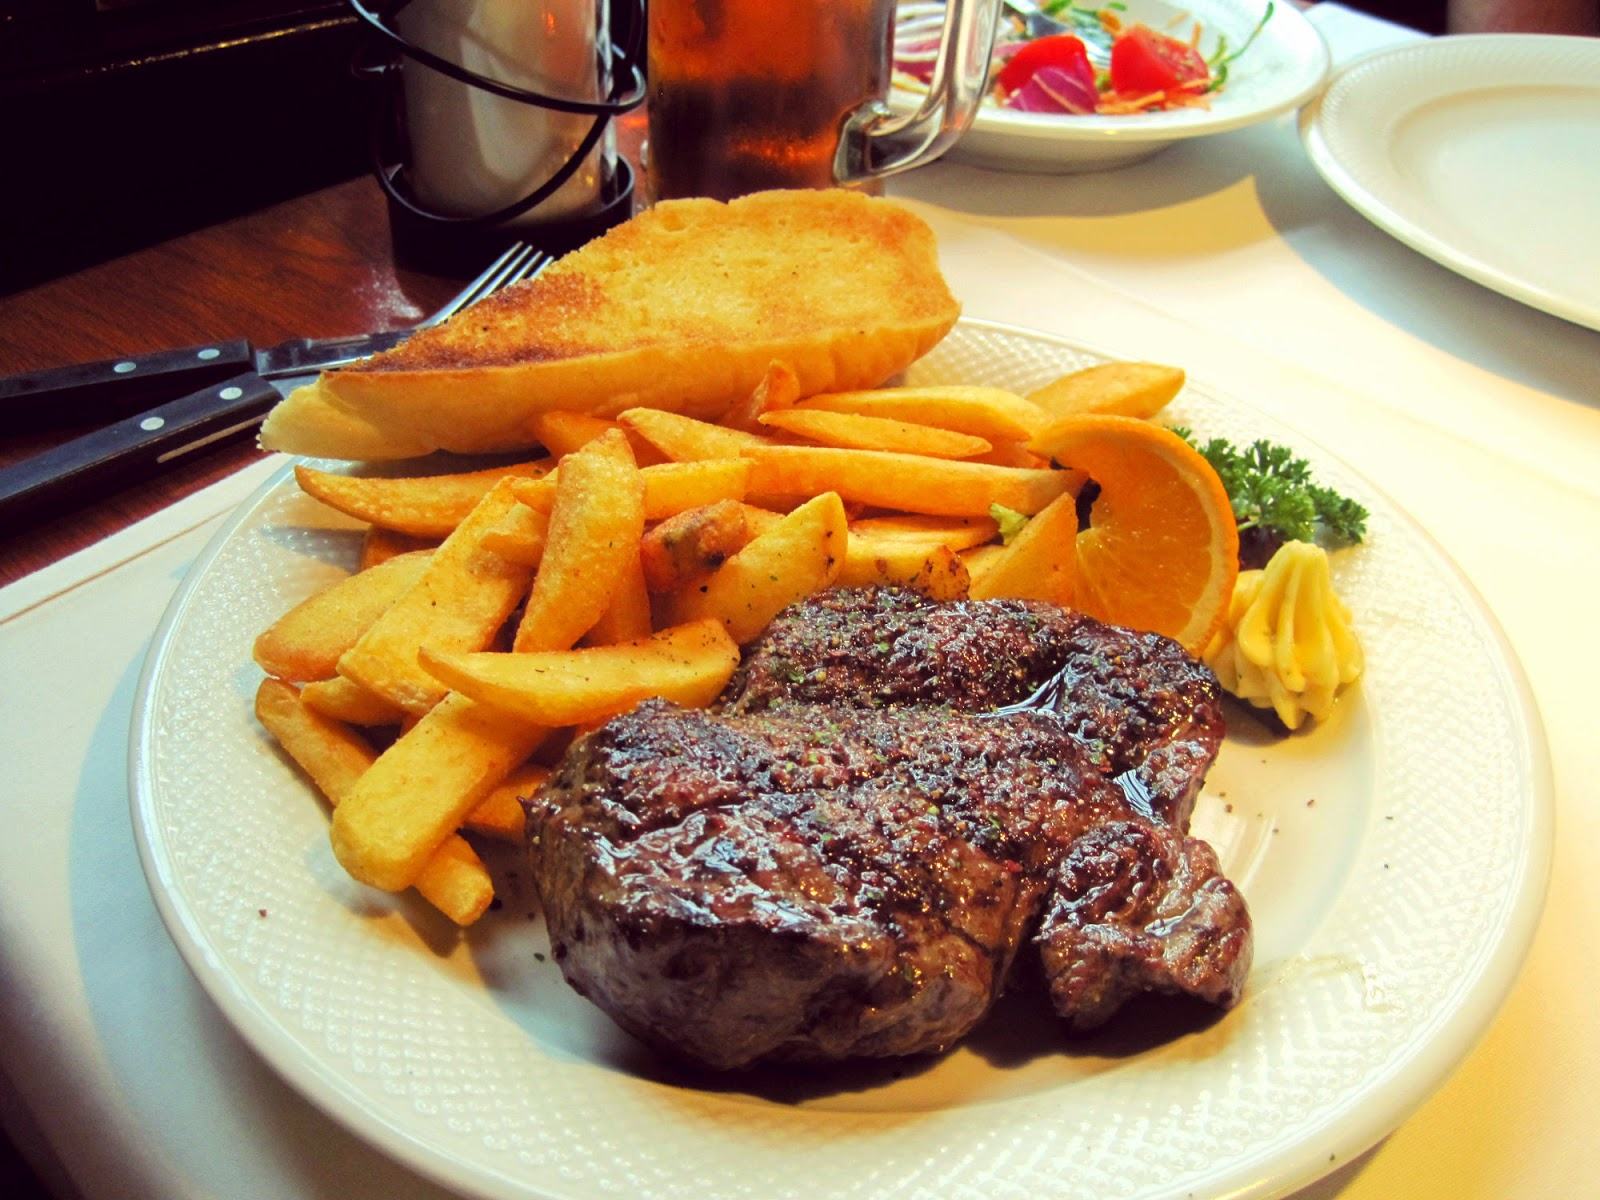 Best steak in Lüneburg